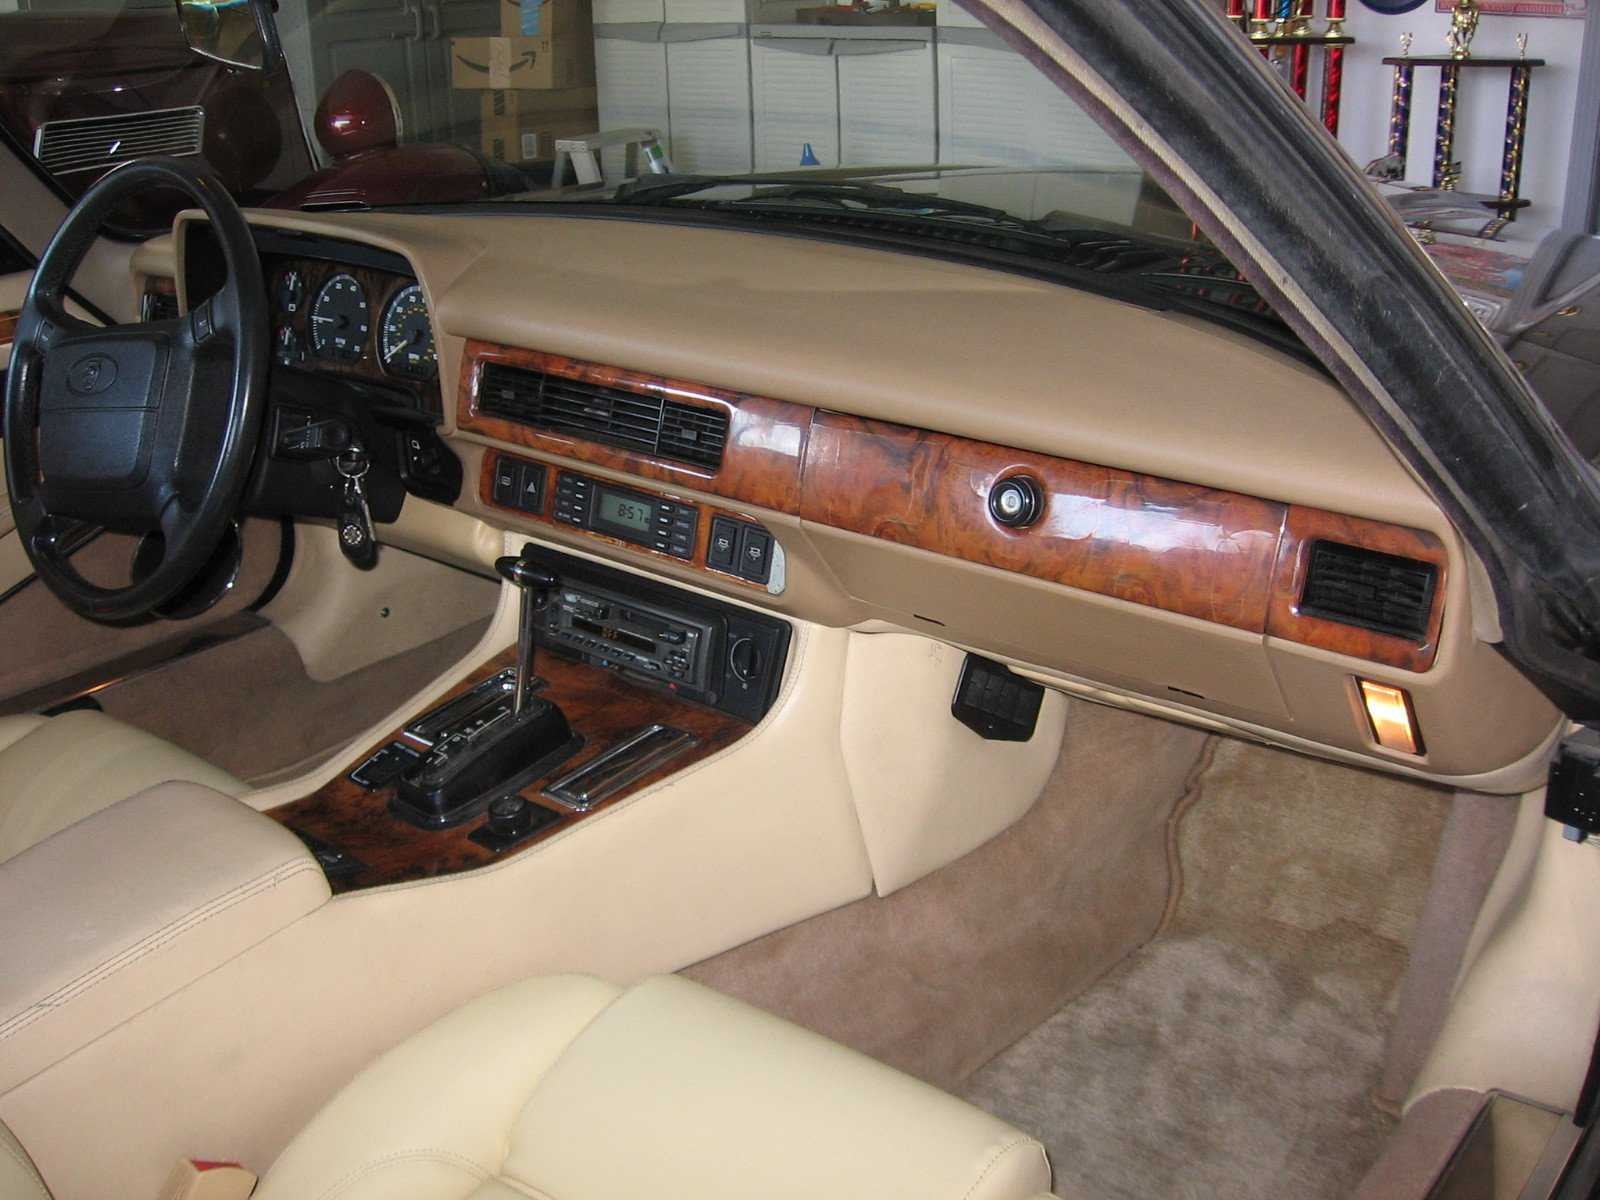 1992 Jaguar Xjs For Sale In Carson City Nv Sajnw4843nc184179 Xj6 Wiring Harness